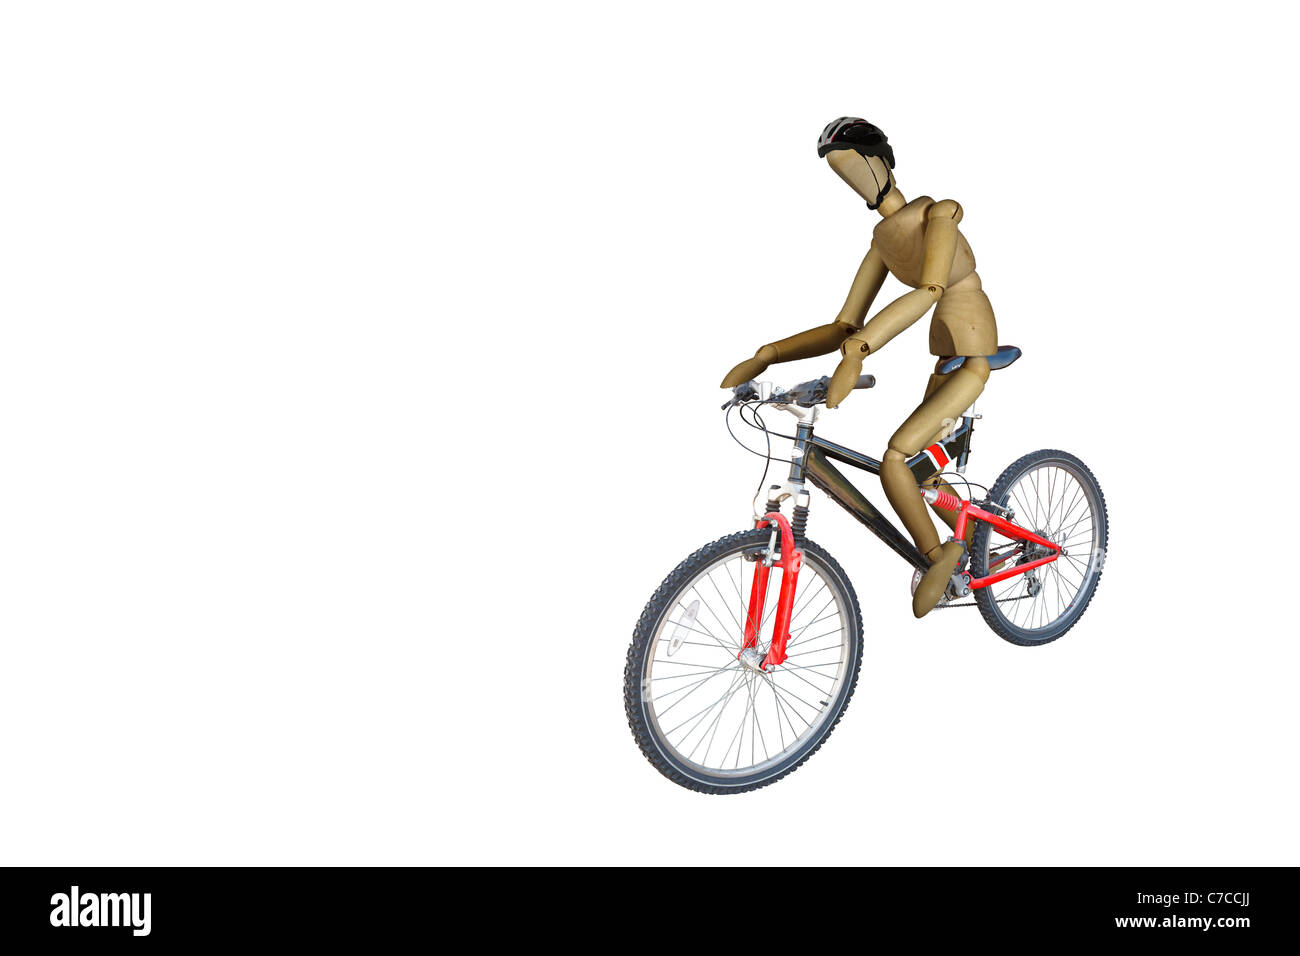 Red and Black Mountain/Off Road Bicycle being ridden by a wood doll  Isolated on white with work path - Stock Image